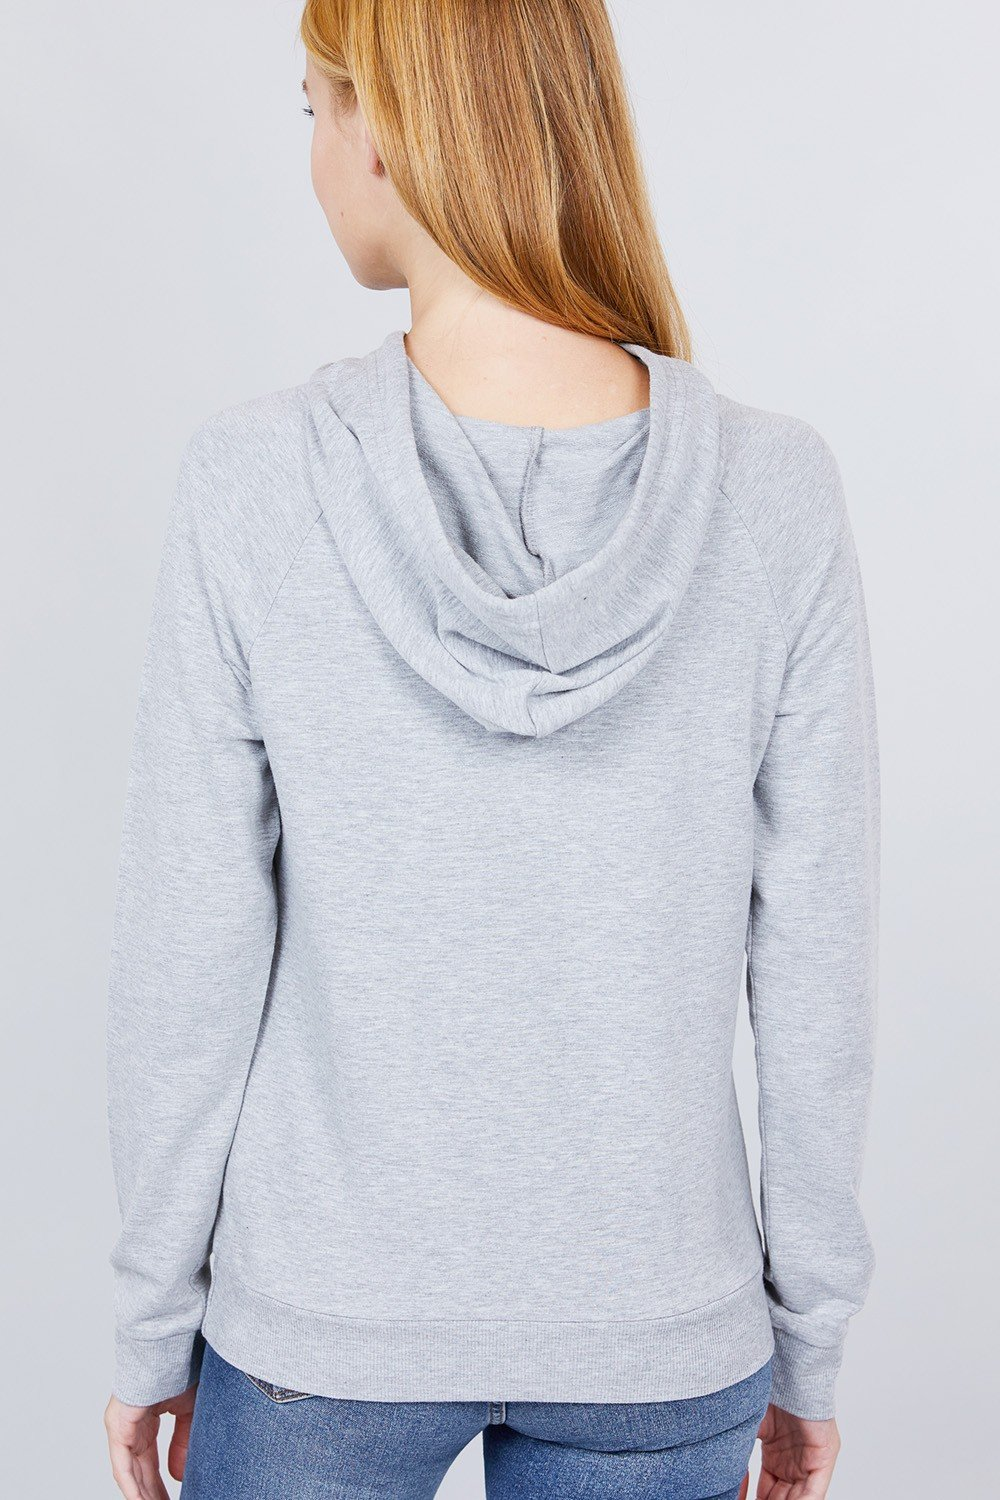 Sweat à capuche french terry pullover 53266d. Vetements Fashions Femme, FRANCE